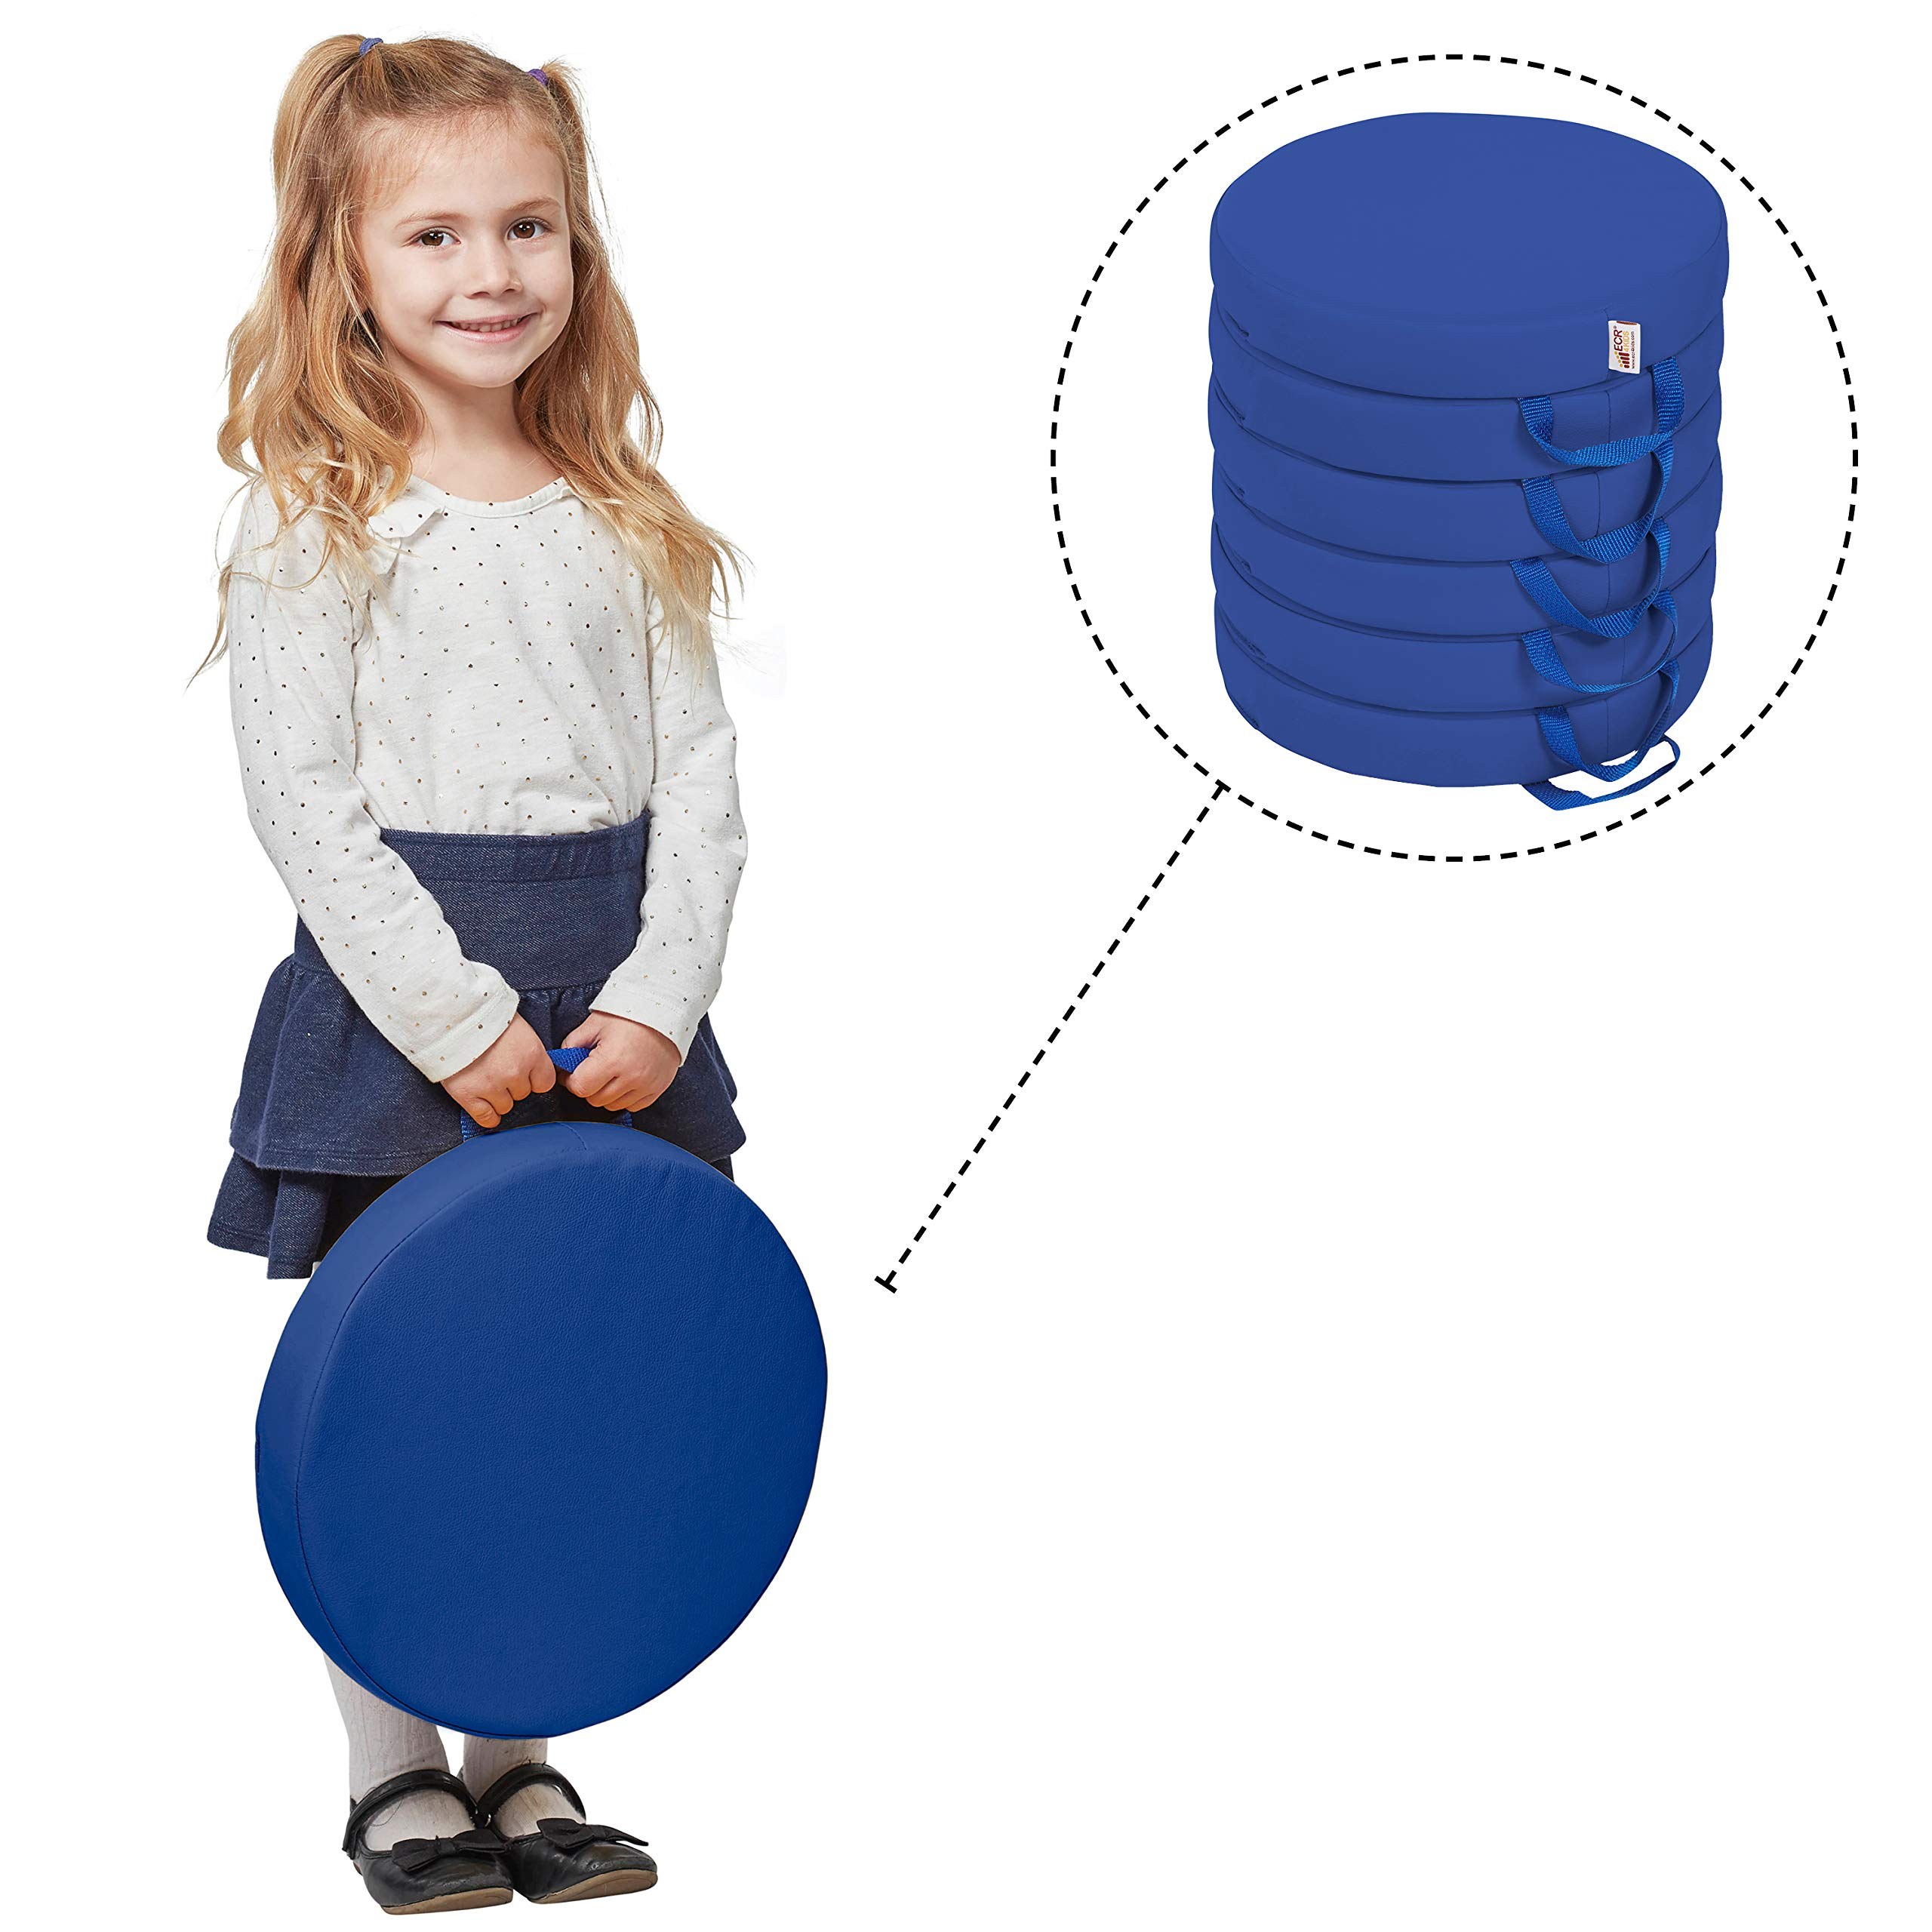 ECR4Kids SoftZone Floor Cushions with Handles, 2'' Deluxe Foam, Round, Blue, (6-Pack)